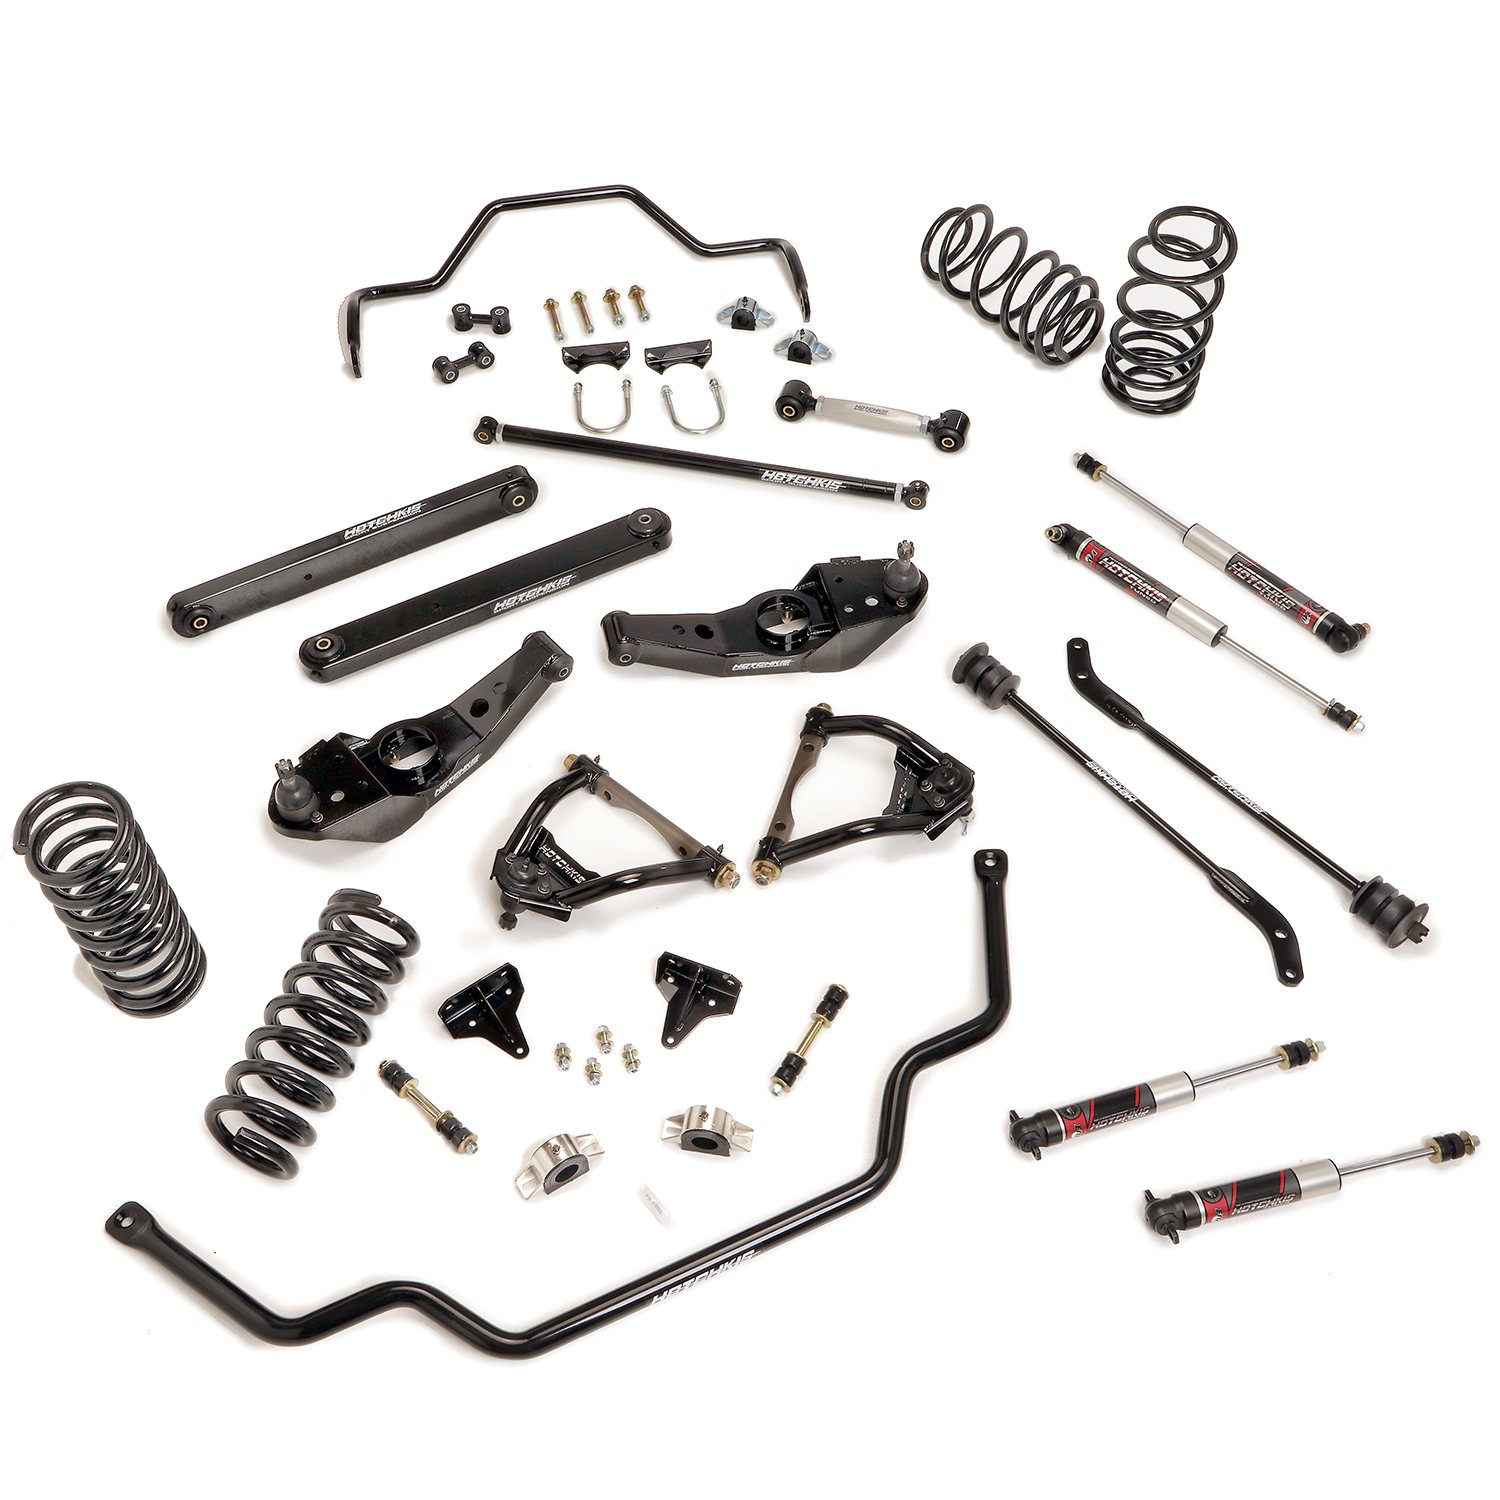 Galaxie Total Vehicle Suspension System